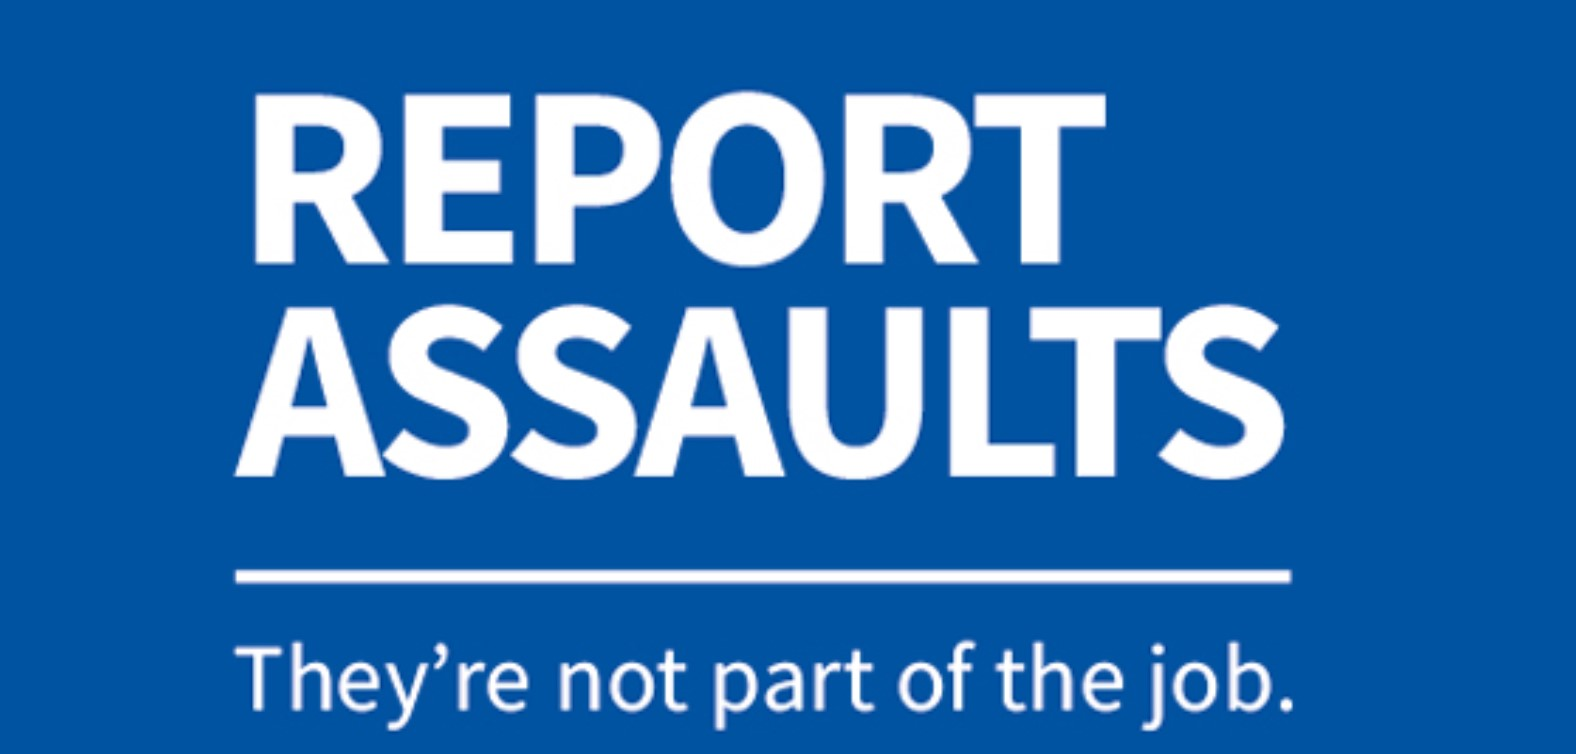 Report Assaults - they're not part of the job.